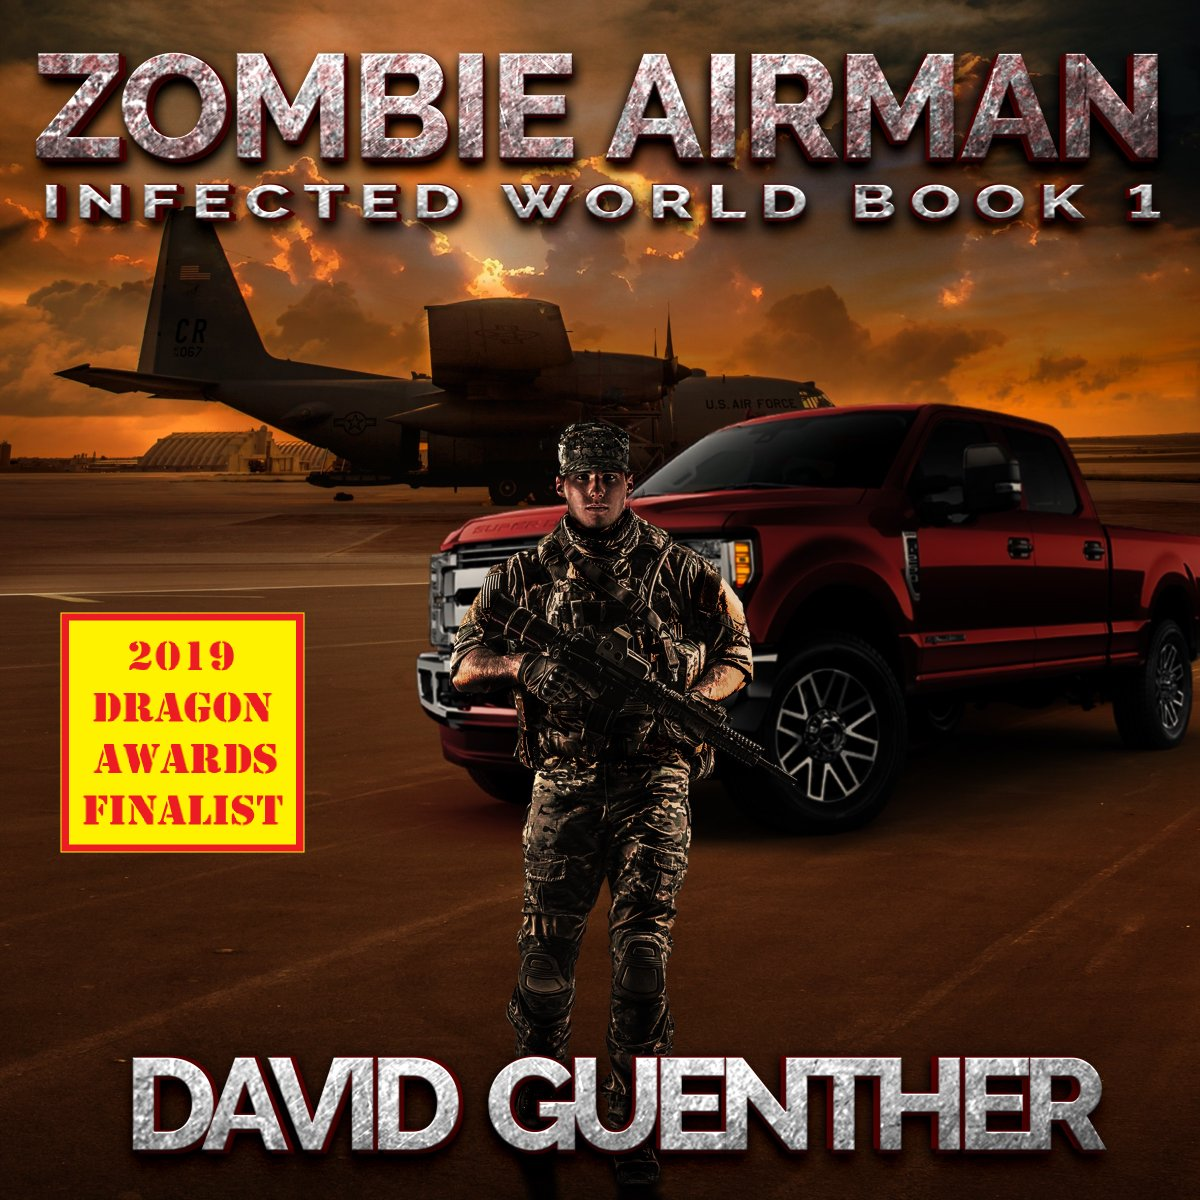 Zombies reinvented, check them out in the 2019 Dragon Awards horror finalist novel ZOMBIE AIRMAN #KindleUnlimited #readers #ScienceFiction #SFRTG #Kindle #War #fiction #Scifi #CR4U #zombiebooks #undead #Audiobook #NewAdult #Fiction #zombiestory #horrorfans https://amzn.to/2T1C3Mppic.twitter.com/BIWwvJeskx